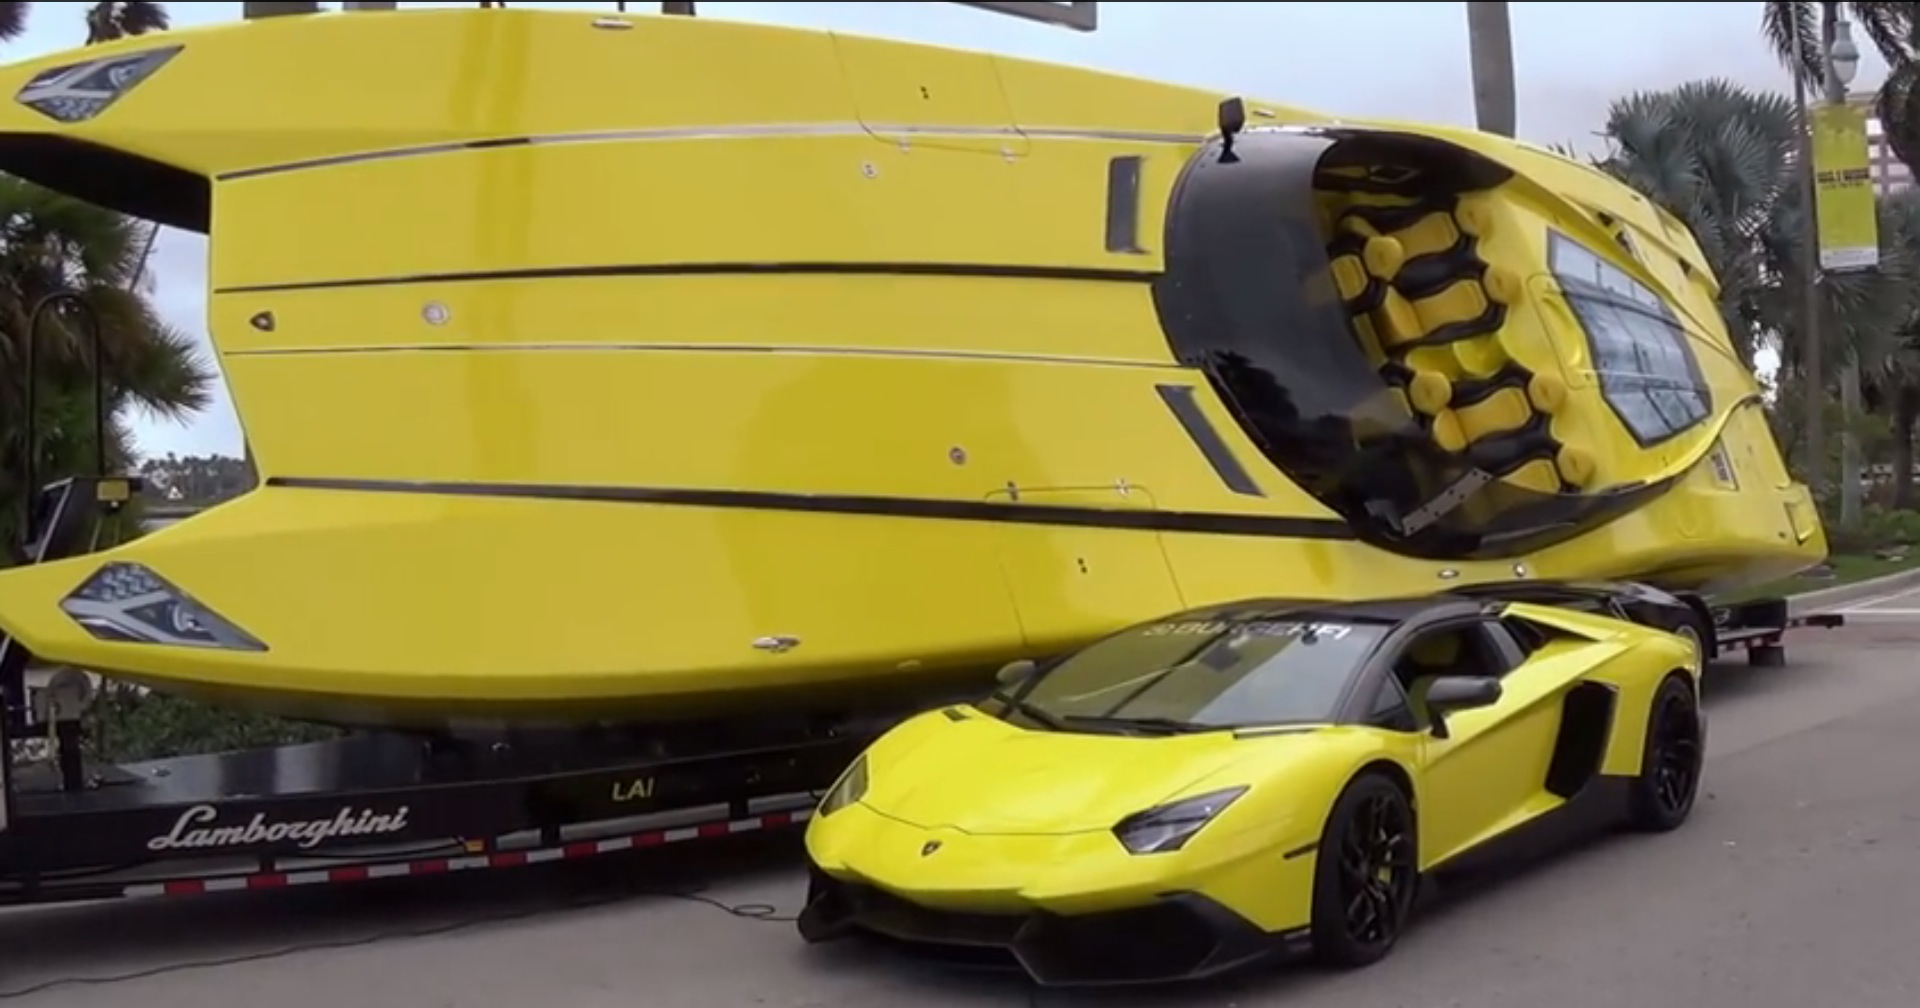 $1.3 Million Lamborghini Boat Has 2,700 HP And Aventador Inspired Interior